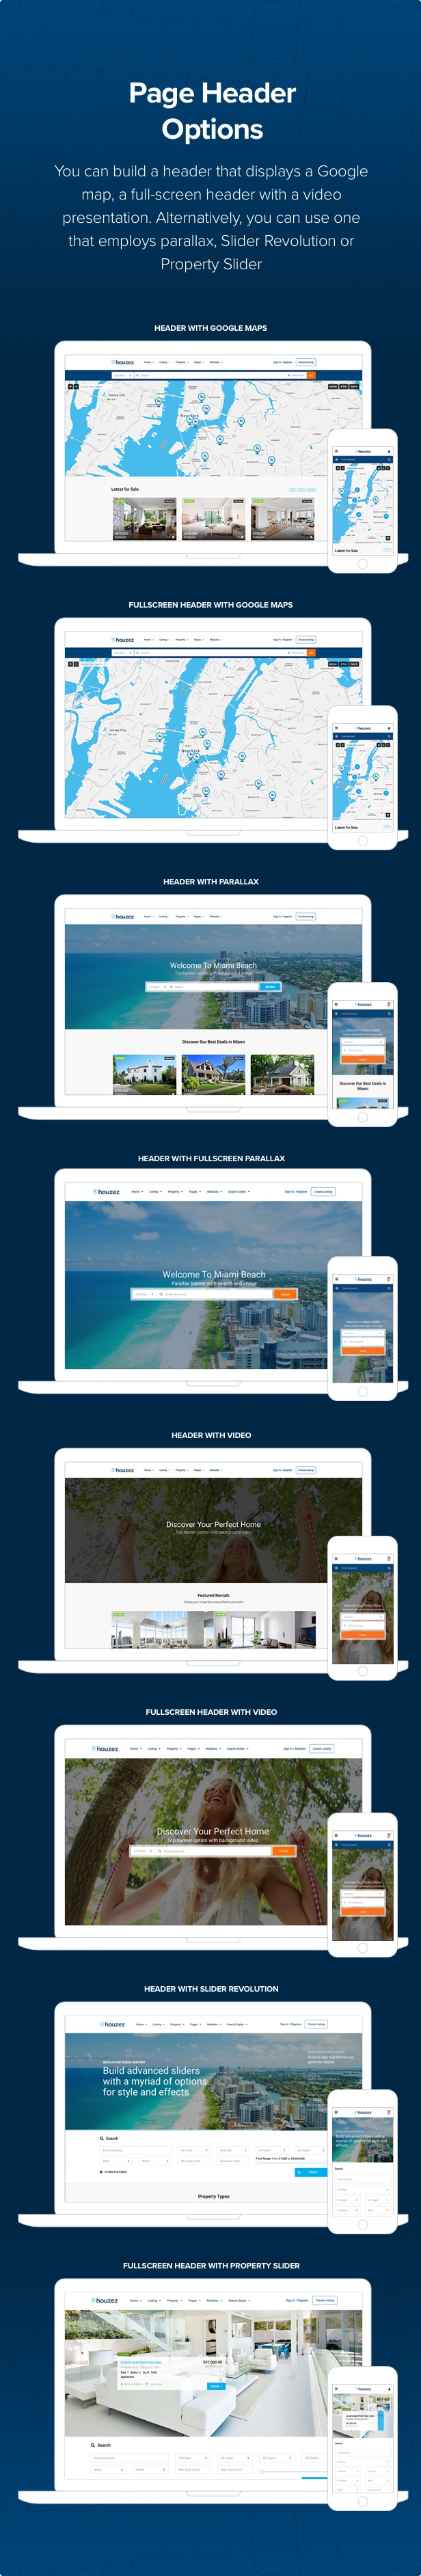 Houzez - Real Estate WordPress Theme - 17